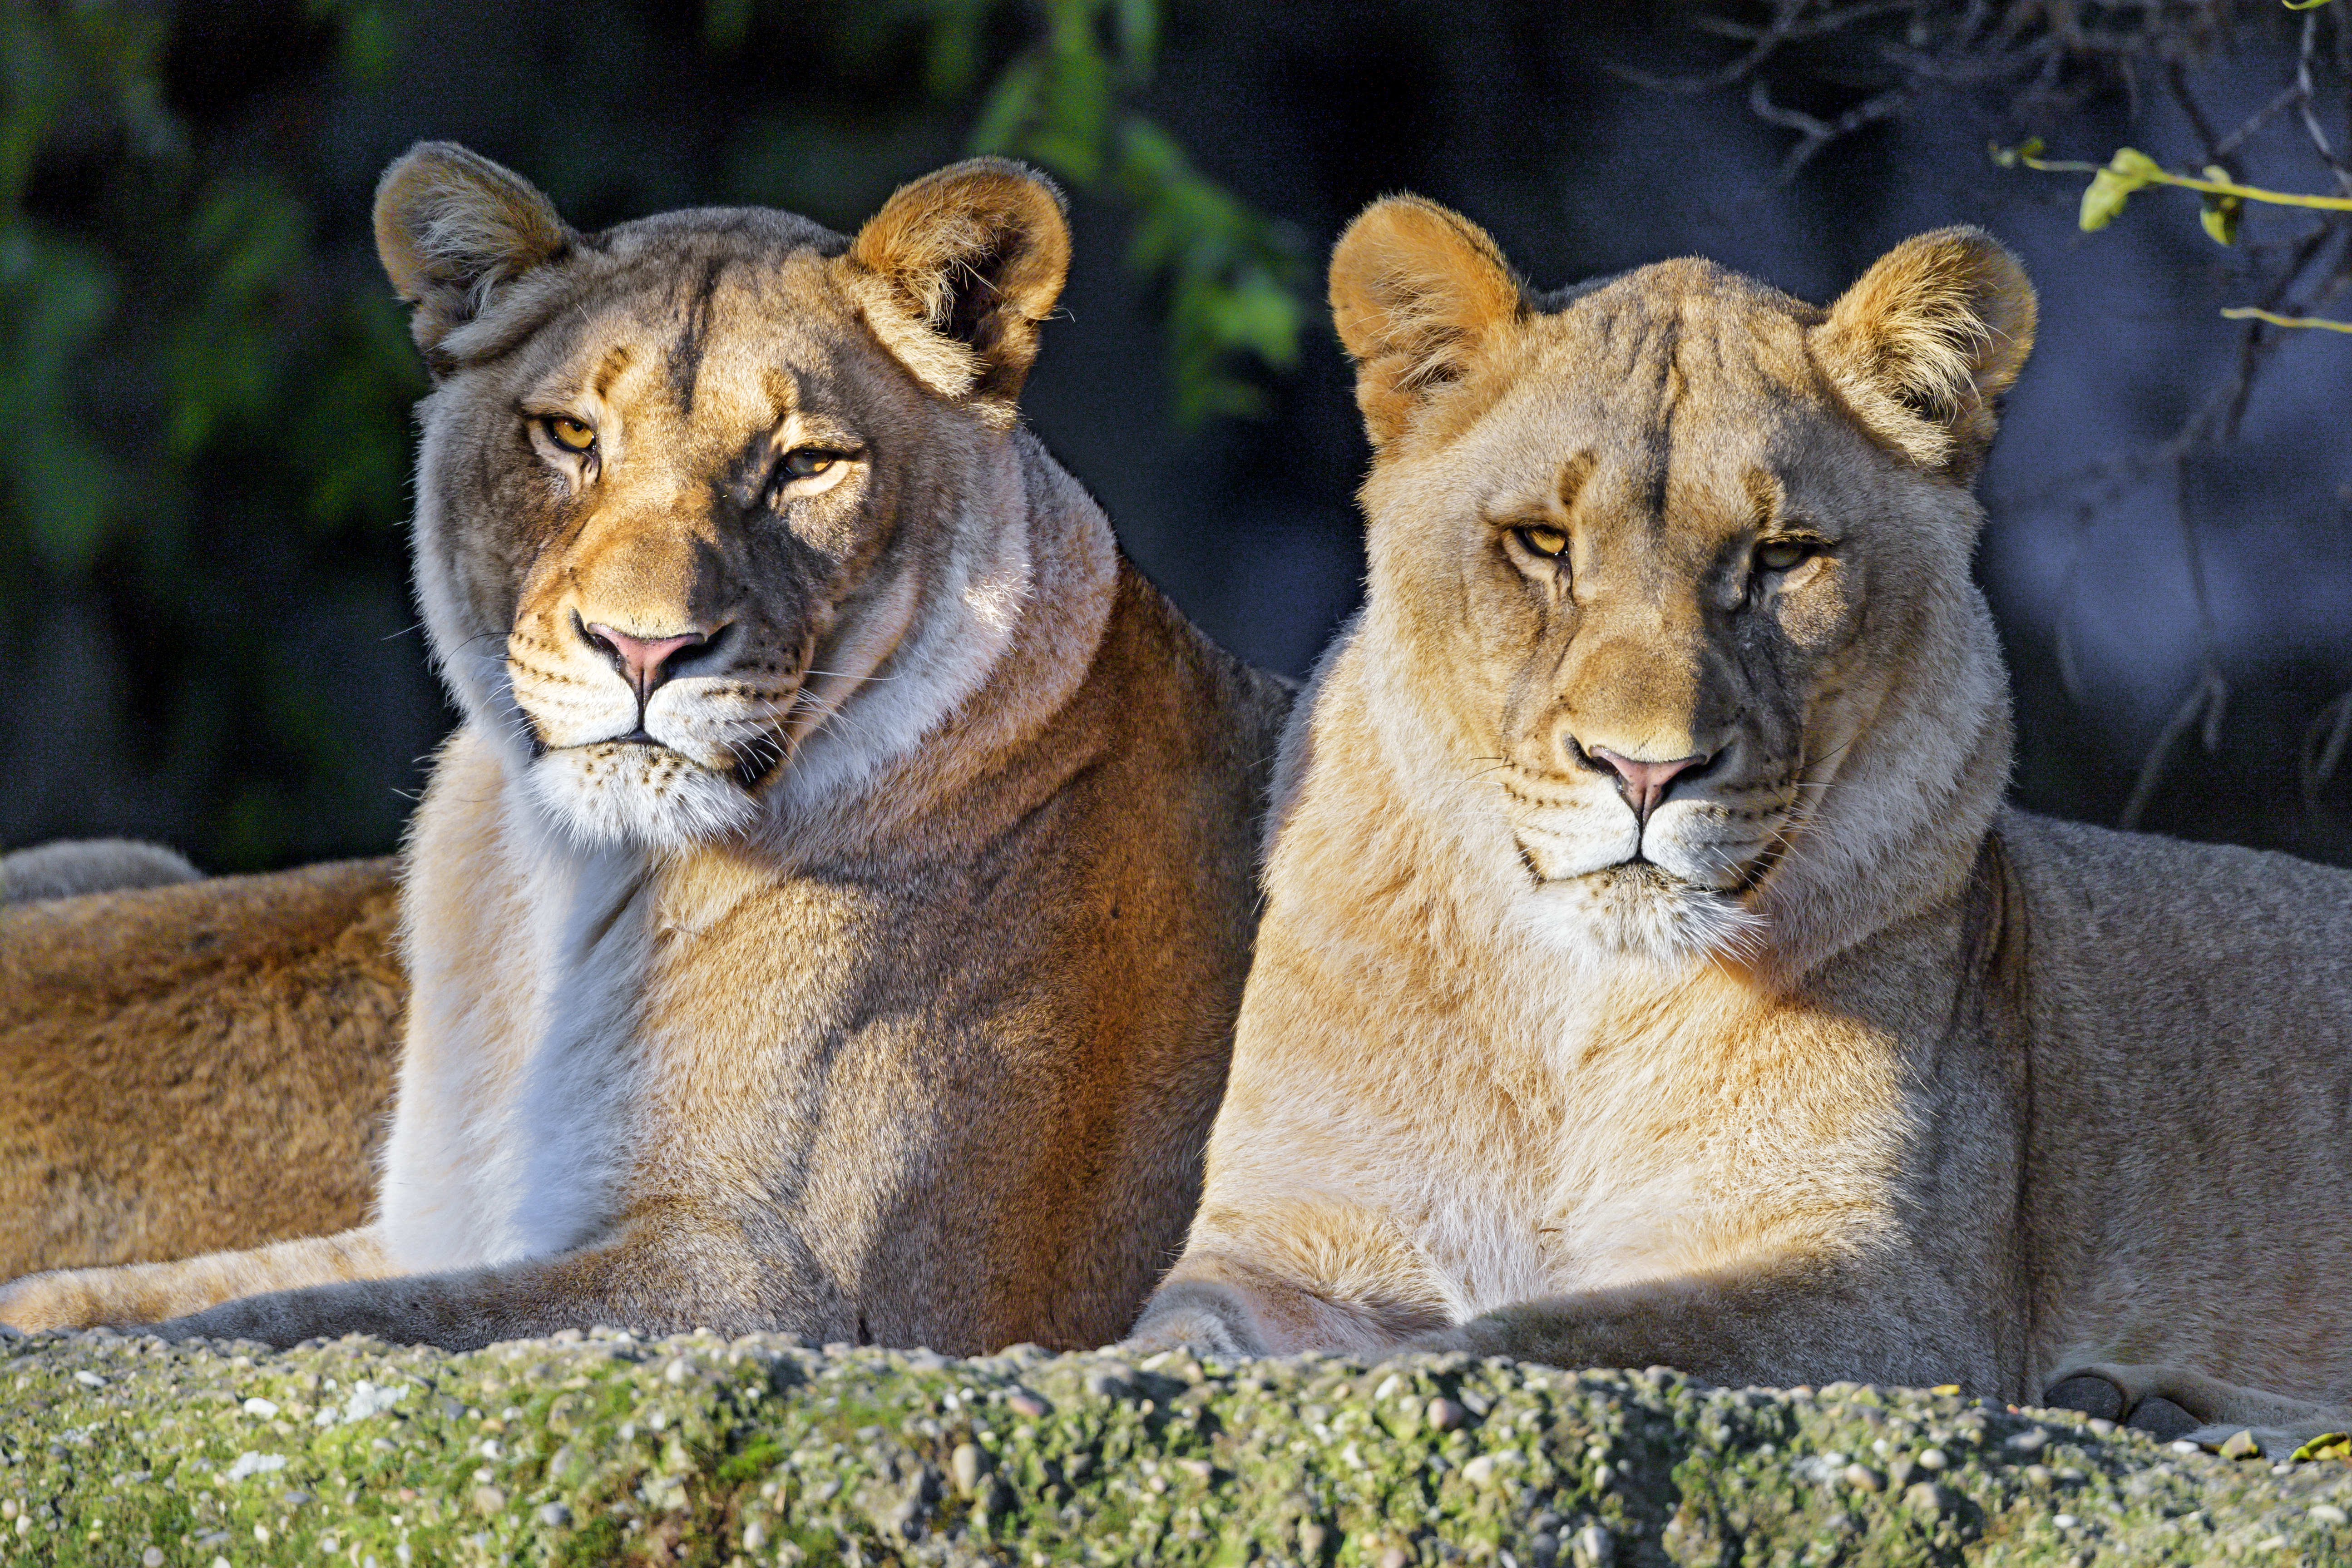 147162 Screensavers and Wallpapers Animal for phone. Download Animals, Lioness, Big Cat, Predator, Sight, Opinion, Wild, Animal pictures for free